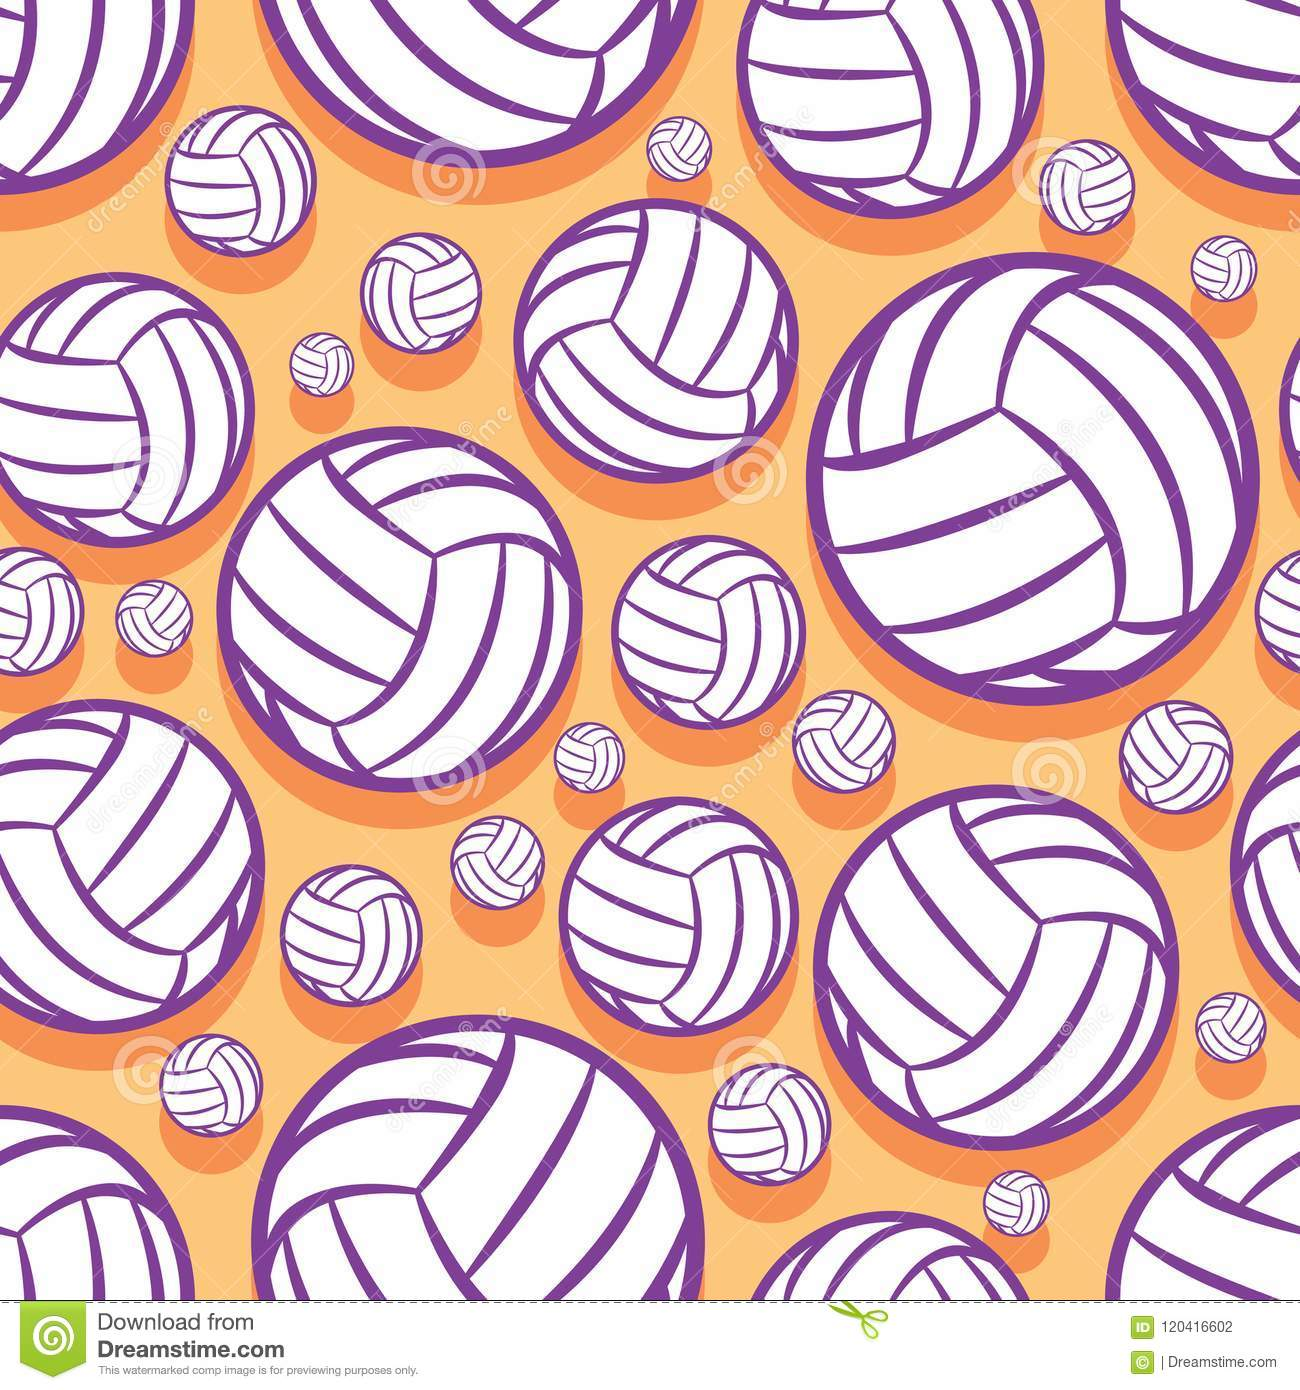 image about Volleyball Printable known as Seamless Practice With Volleyball Ball Impression. Inventory Vector